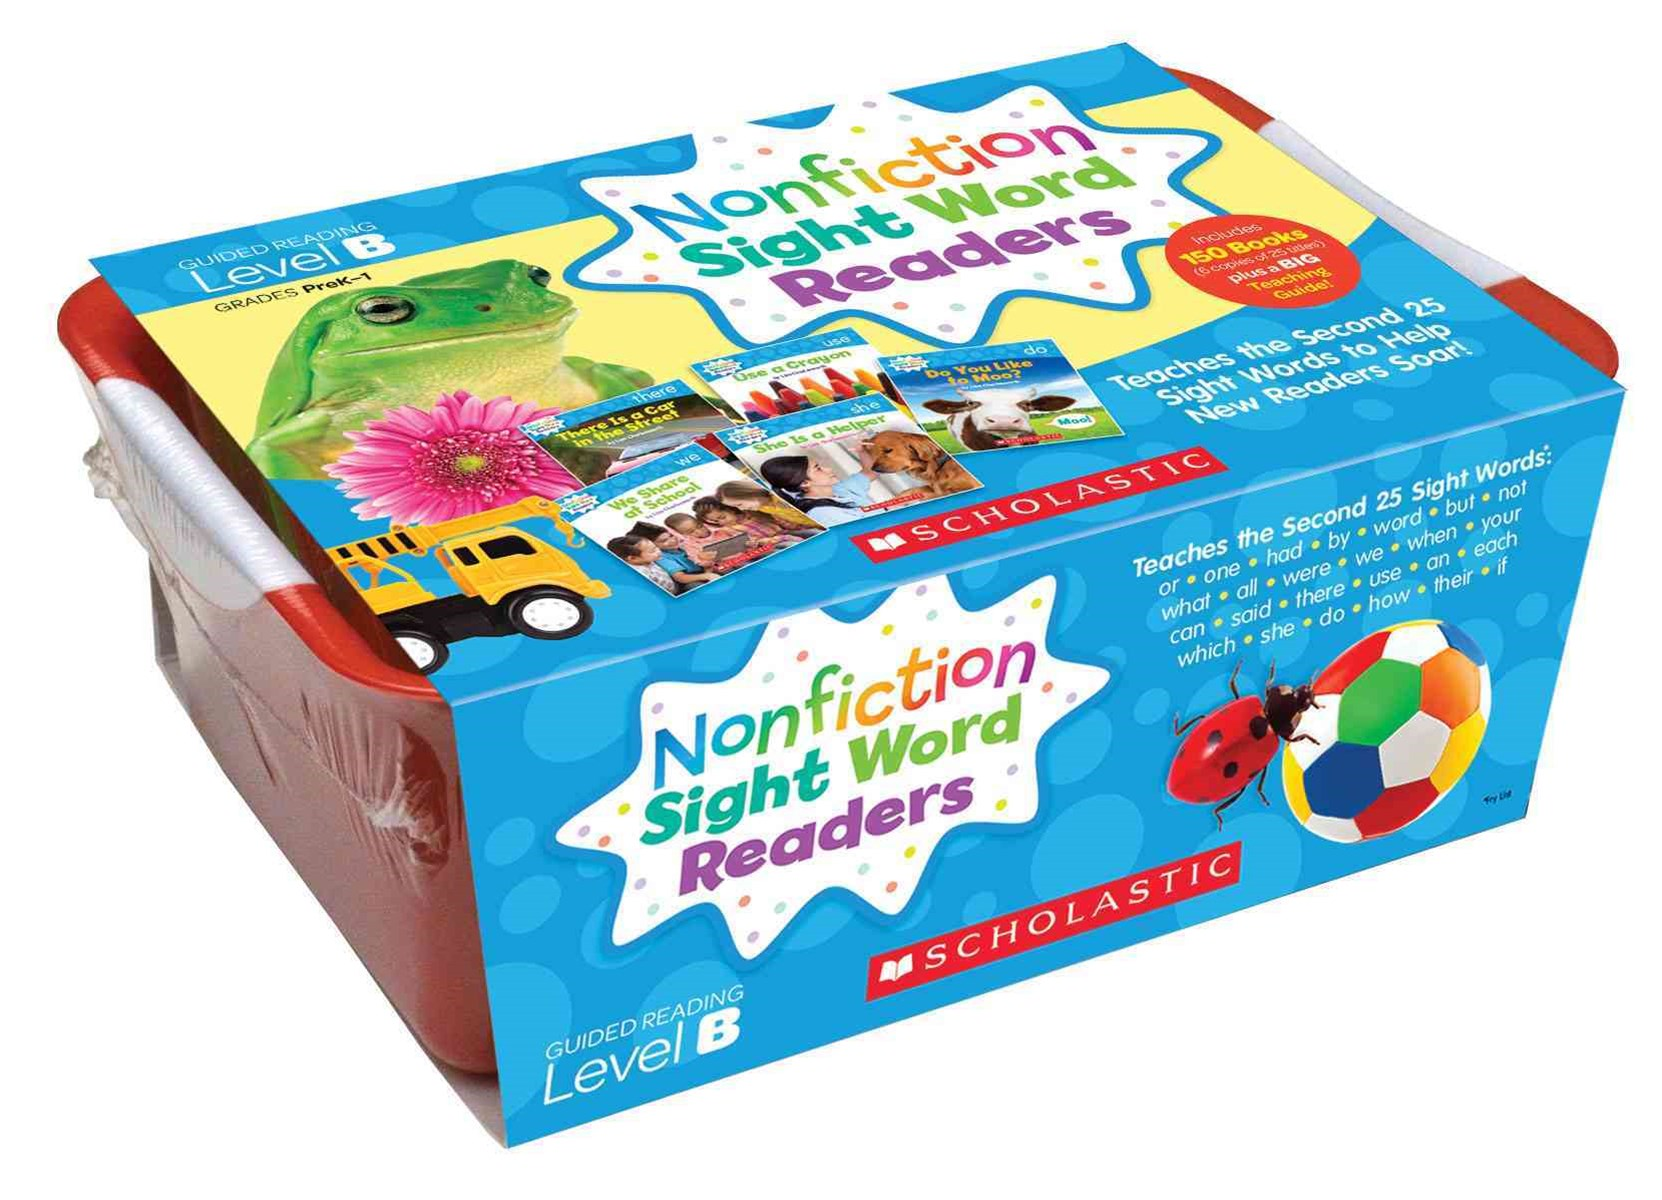 Nonfiction Sight Word Readers Classroom Tub 2